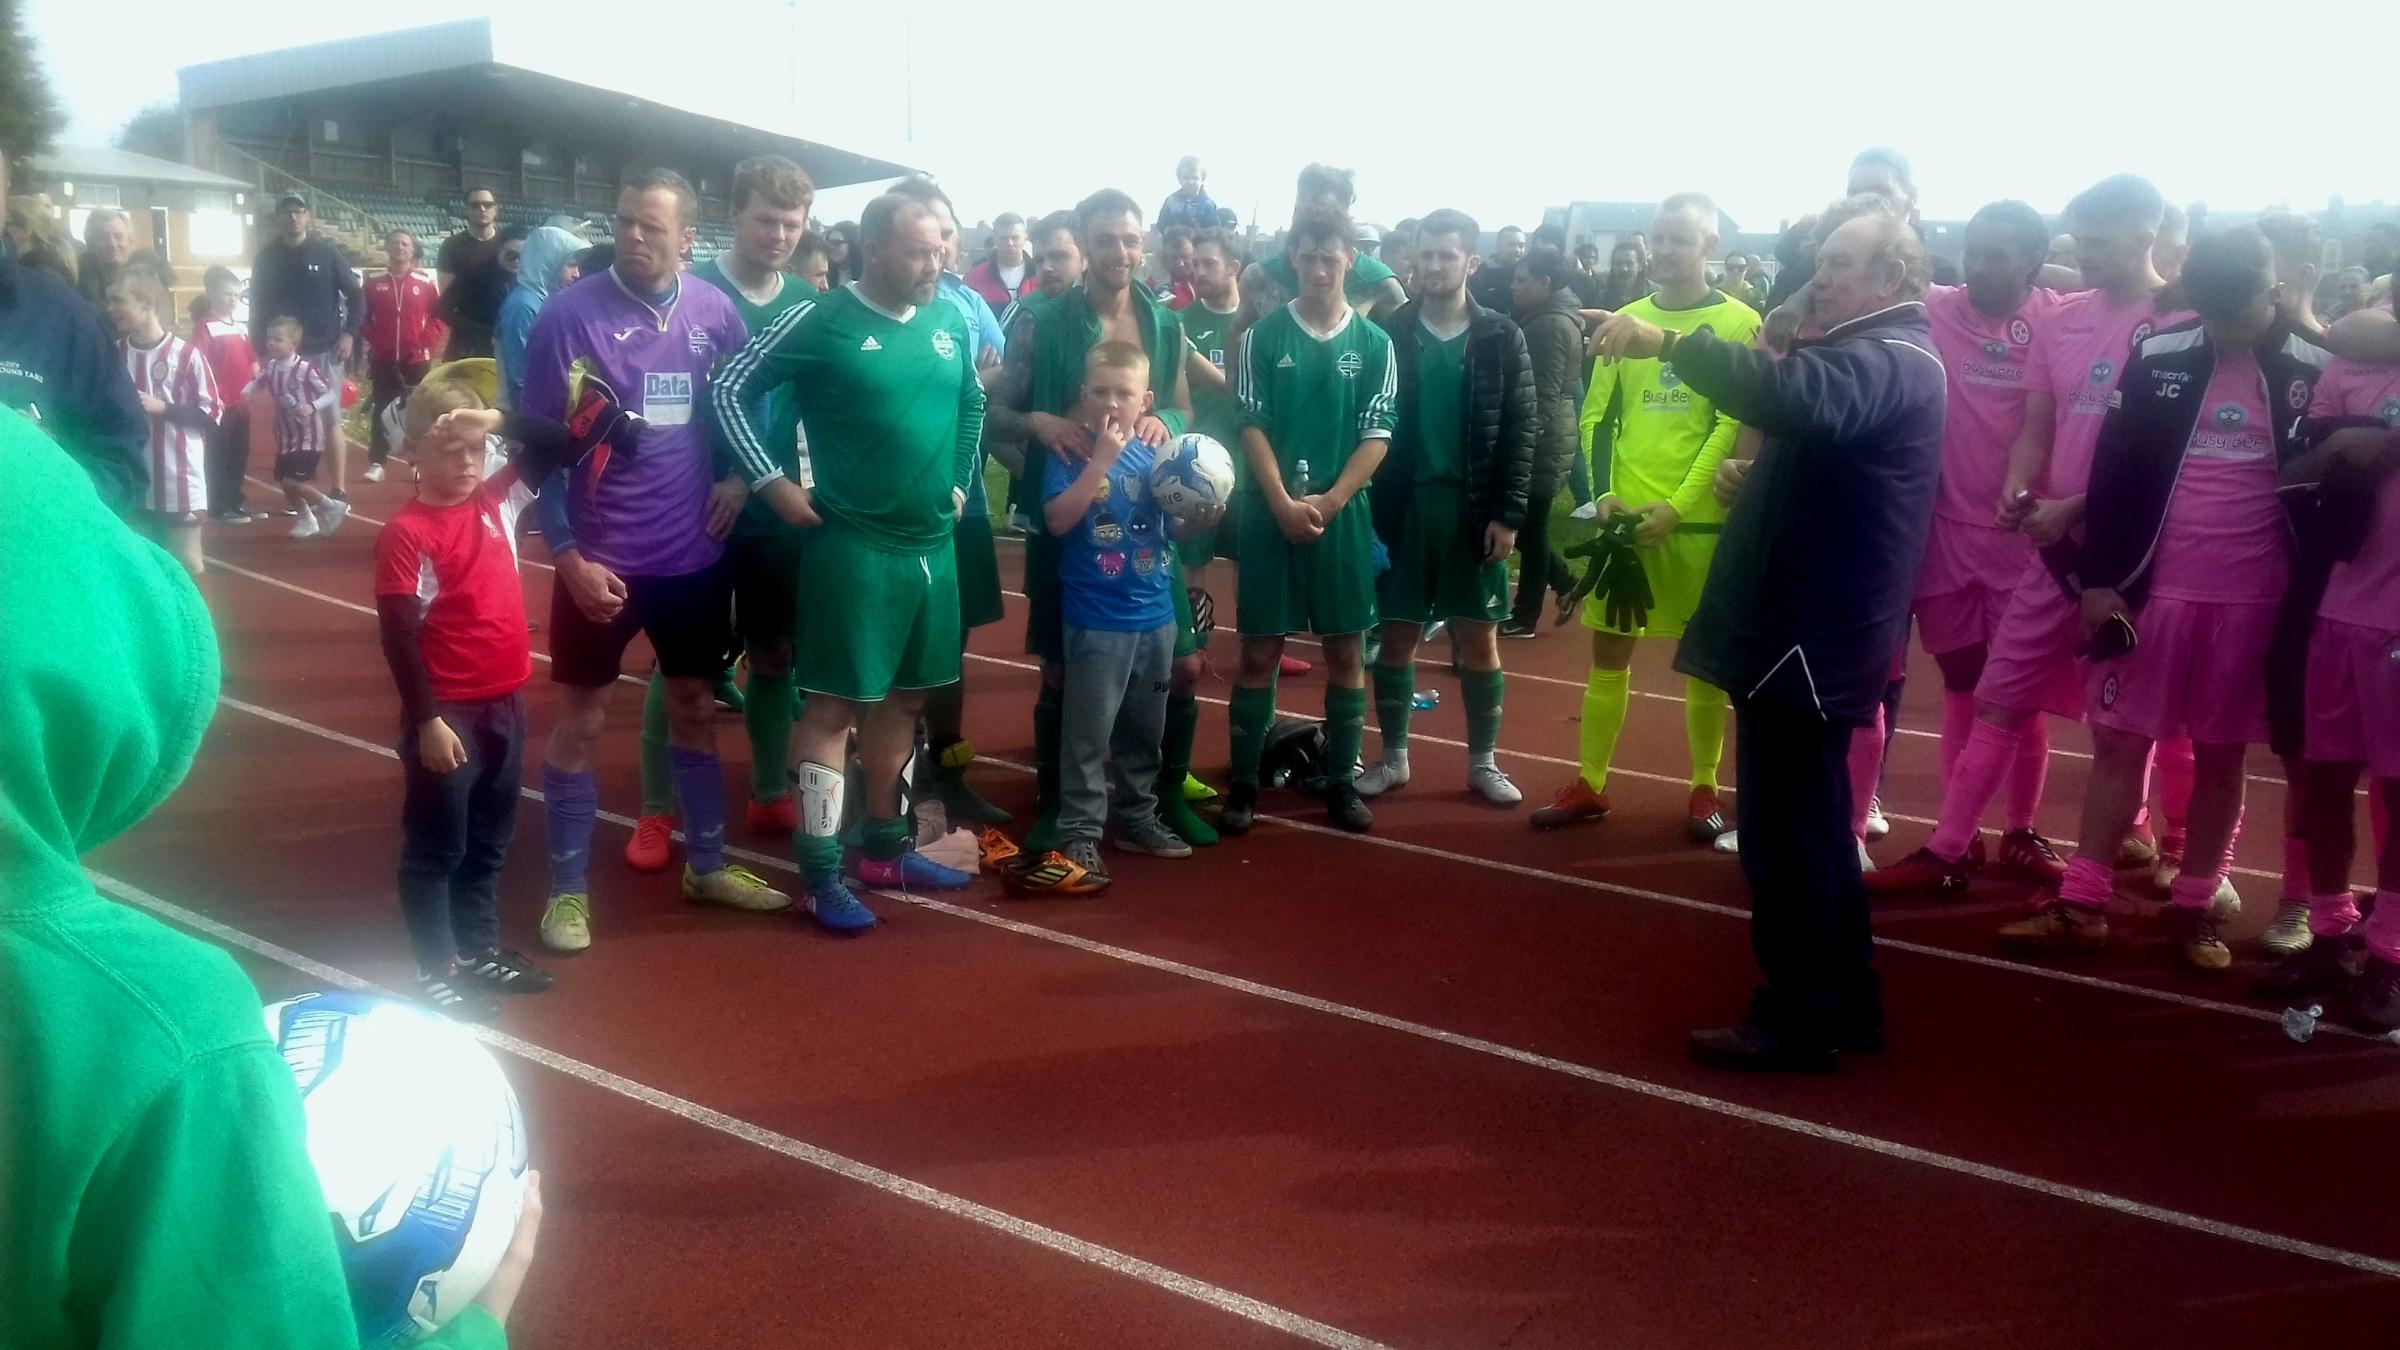 Vale of Glamorgan League chairman Tony Williams introduces the presentation team during the excellent demonstration of camaraderie between the two teams that followed the final whistle – Holton Road wearing pink and Cadoxton Barry wearing green